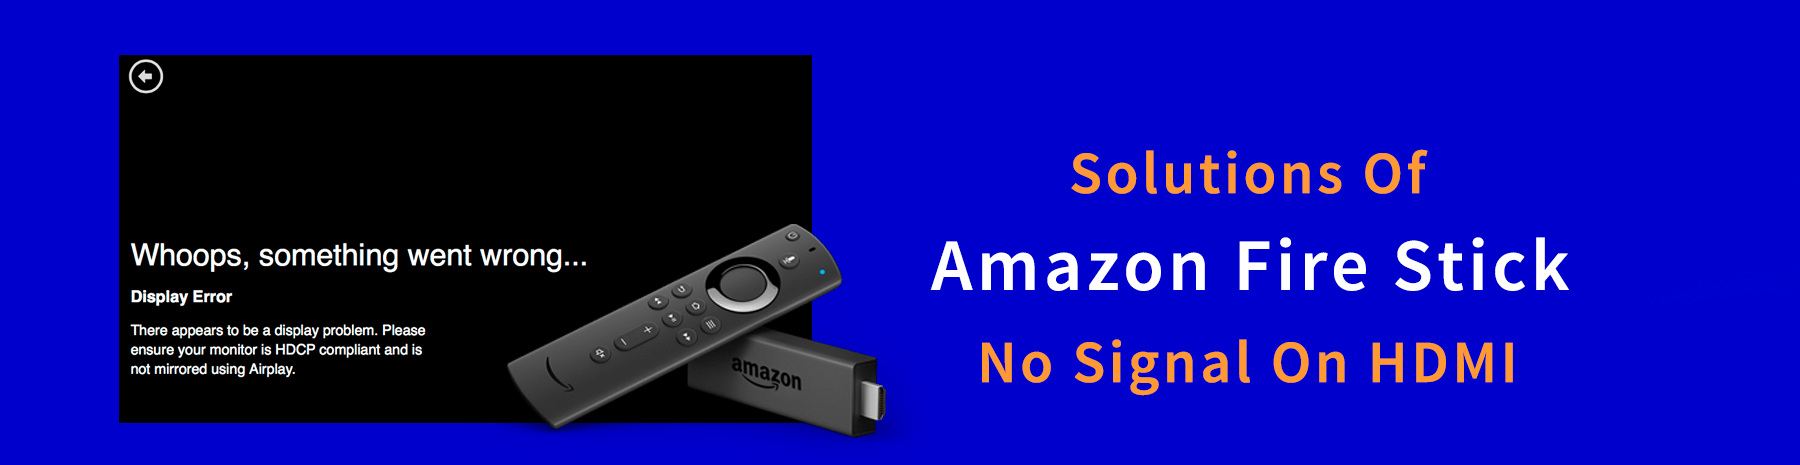 Amazon Firestick No Signal On HDMI